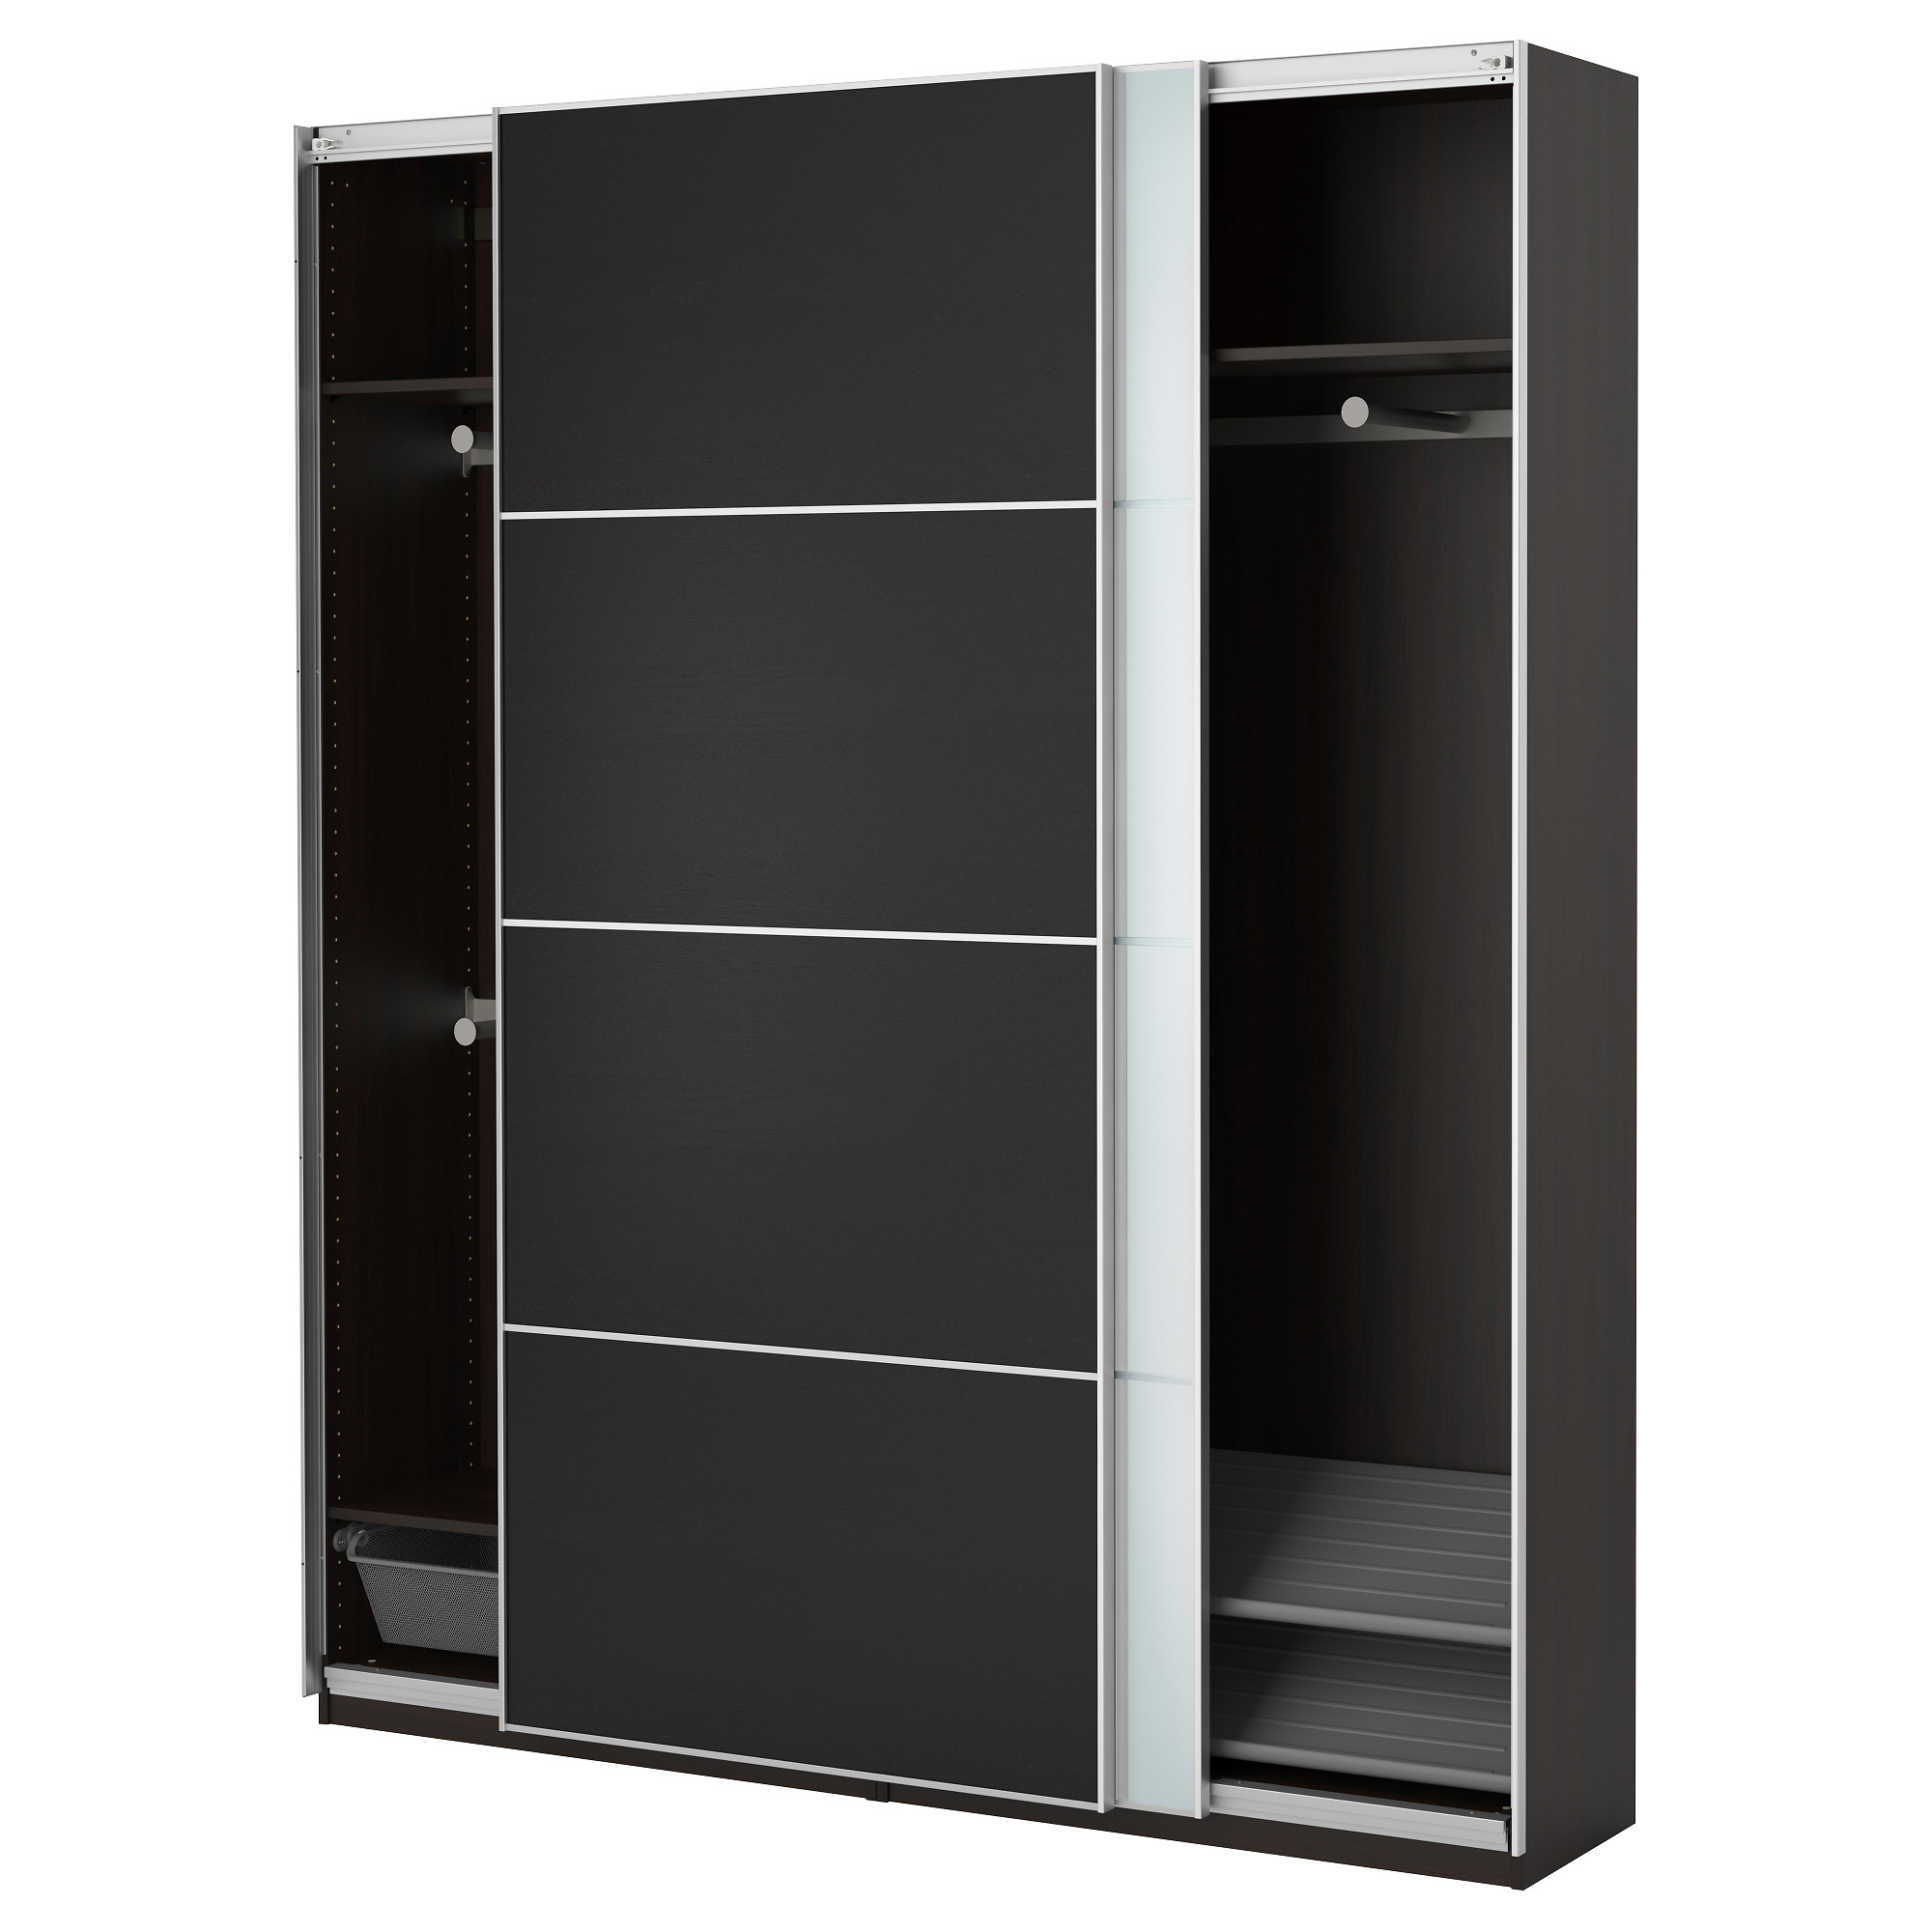 m bel schrank 2016 kleiderschrank schwarz. Black Bedroom Furniture Sets. Home Design Ideas